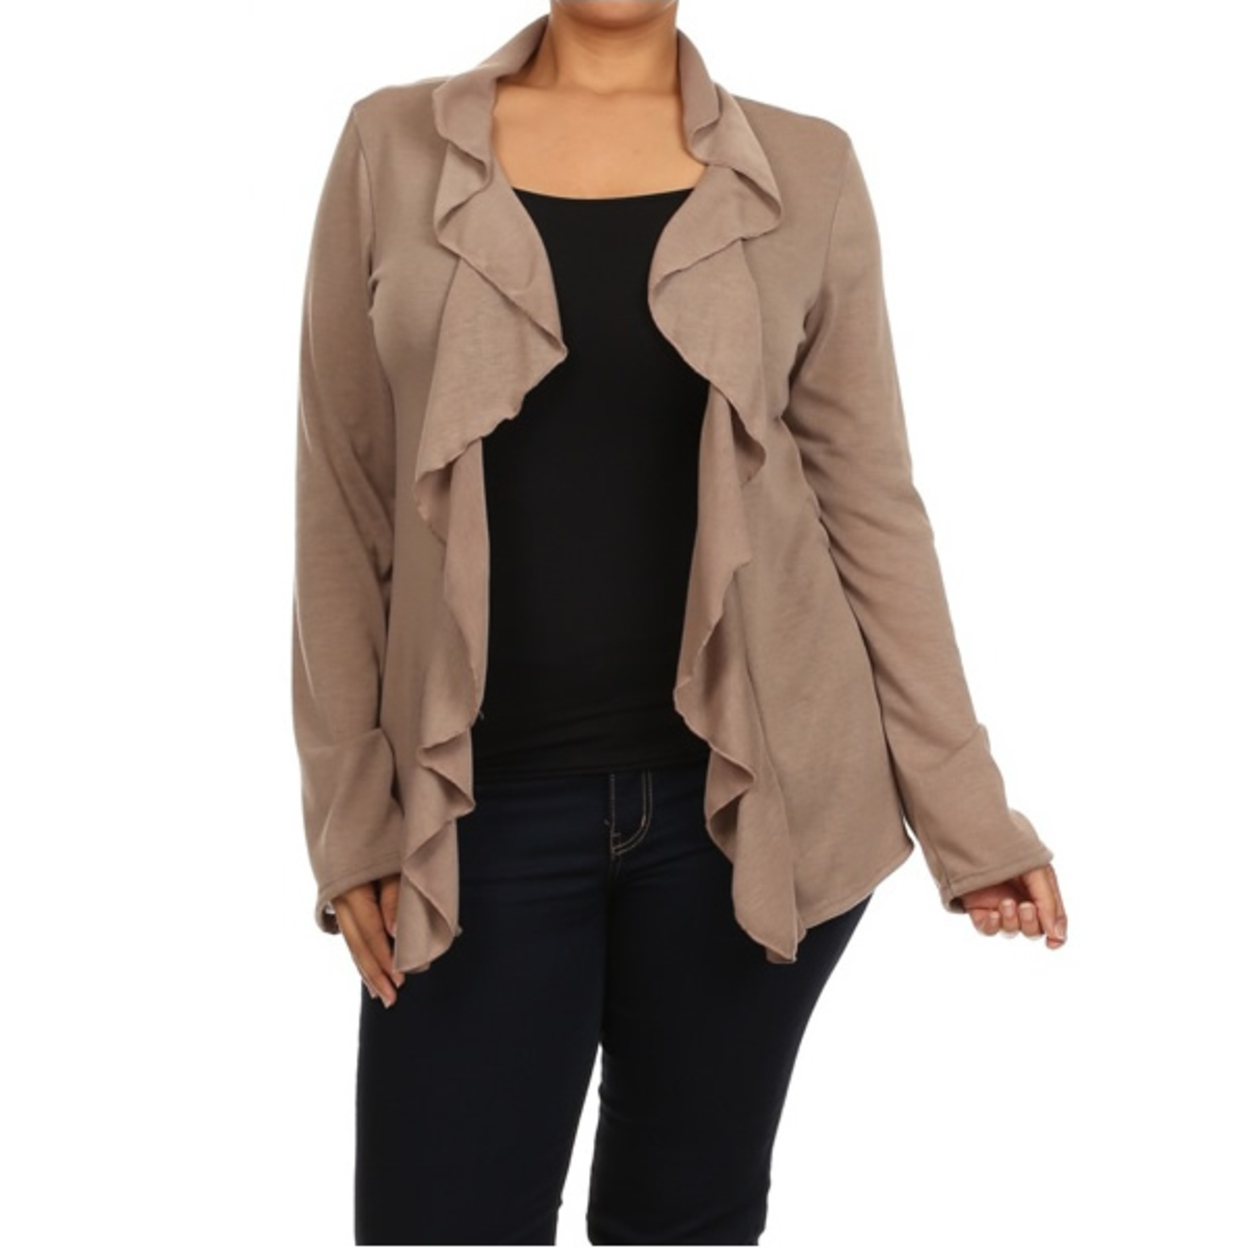 Frills And Thrills Cardigans In 3 Colors And Plus Sizes - Mocha Brown, 1 XL 55db6919683d6f86698b4638